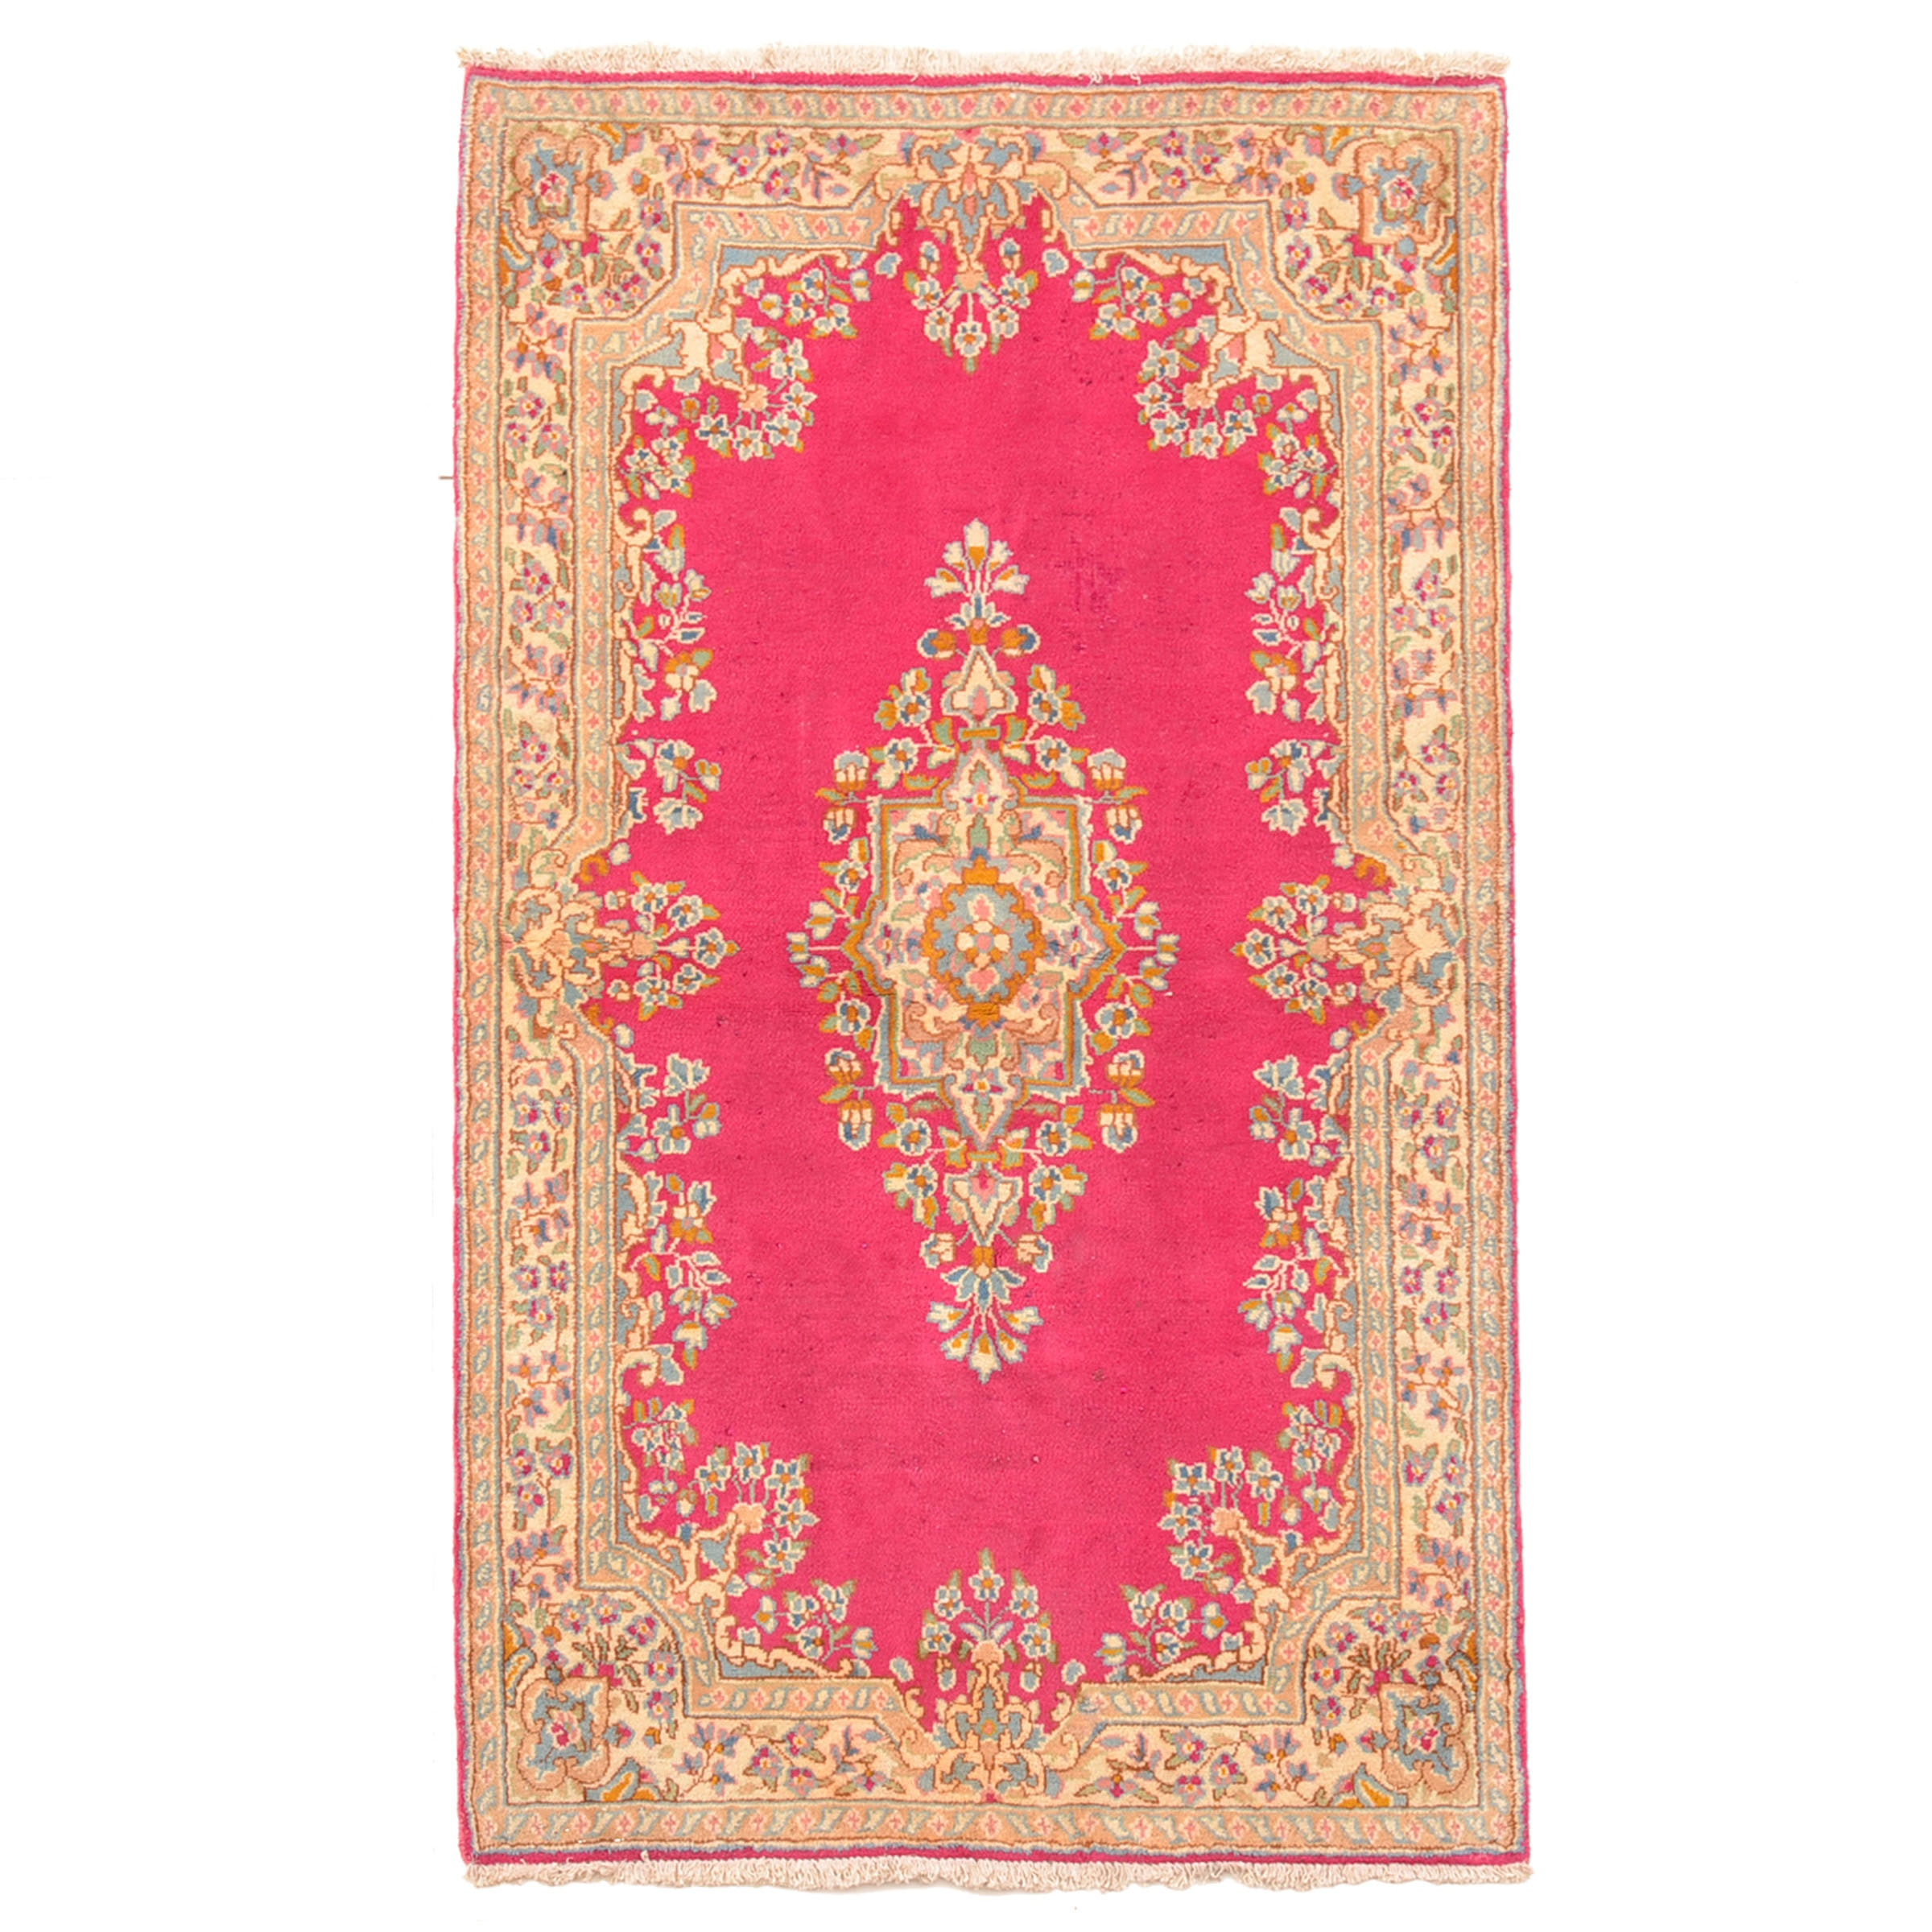 Hand-Knotted Kerman-Style Wool Area Rug